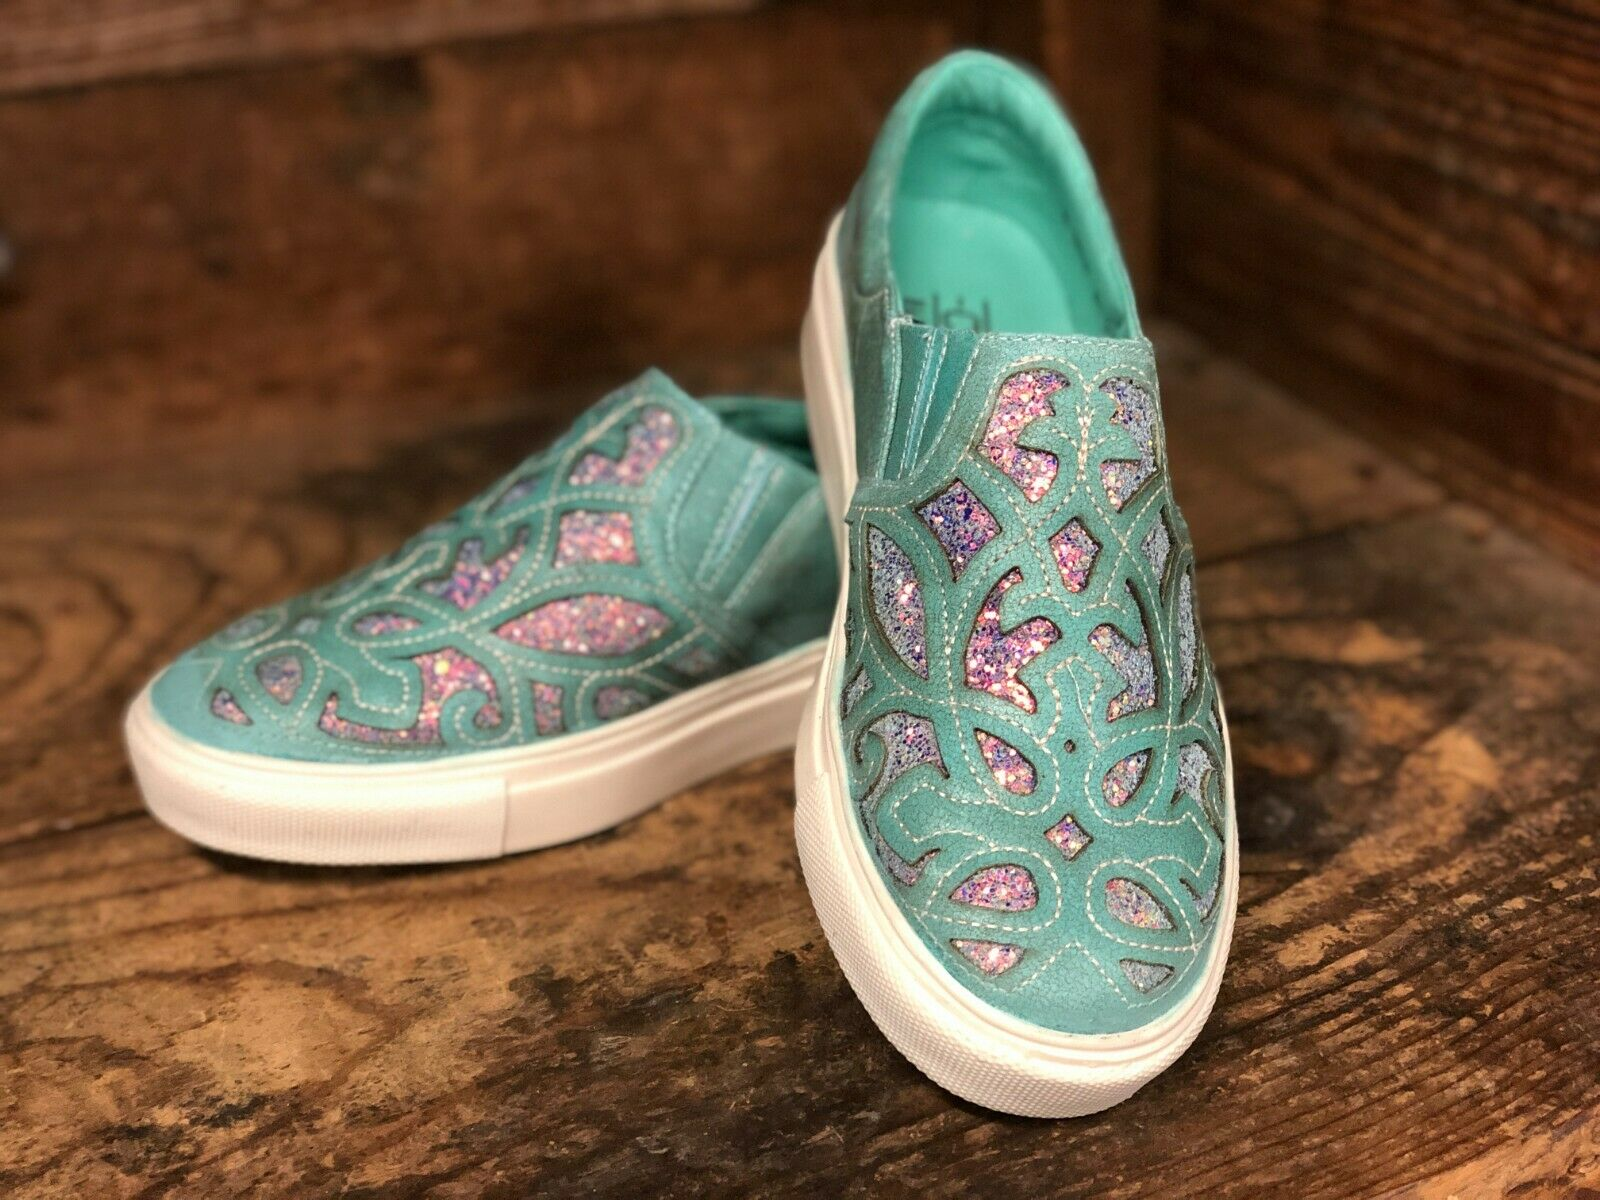 Corral Women's Turquoise & Glitter Inlay Slip On Casual shoes E1566